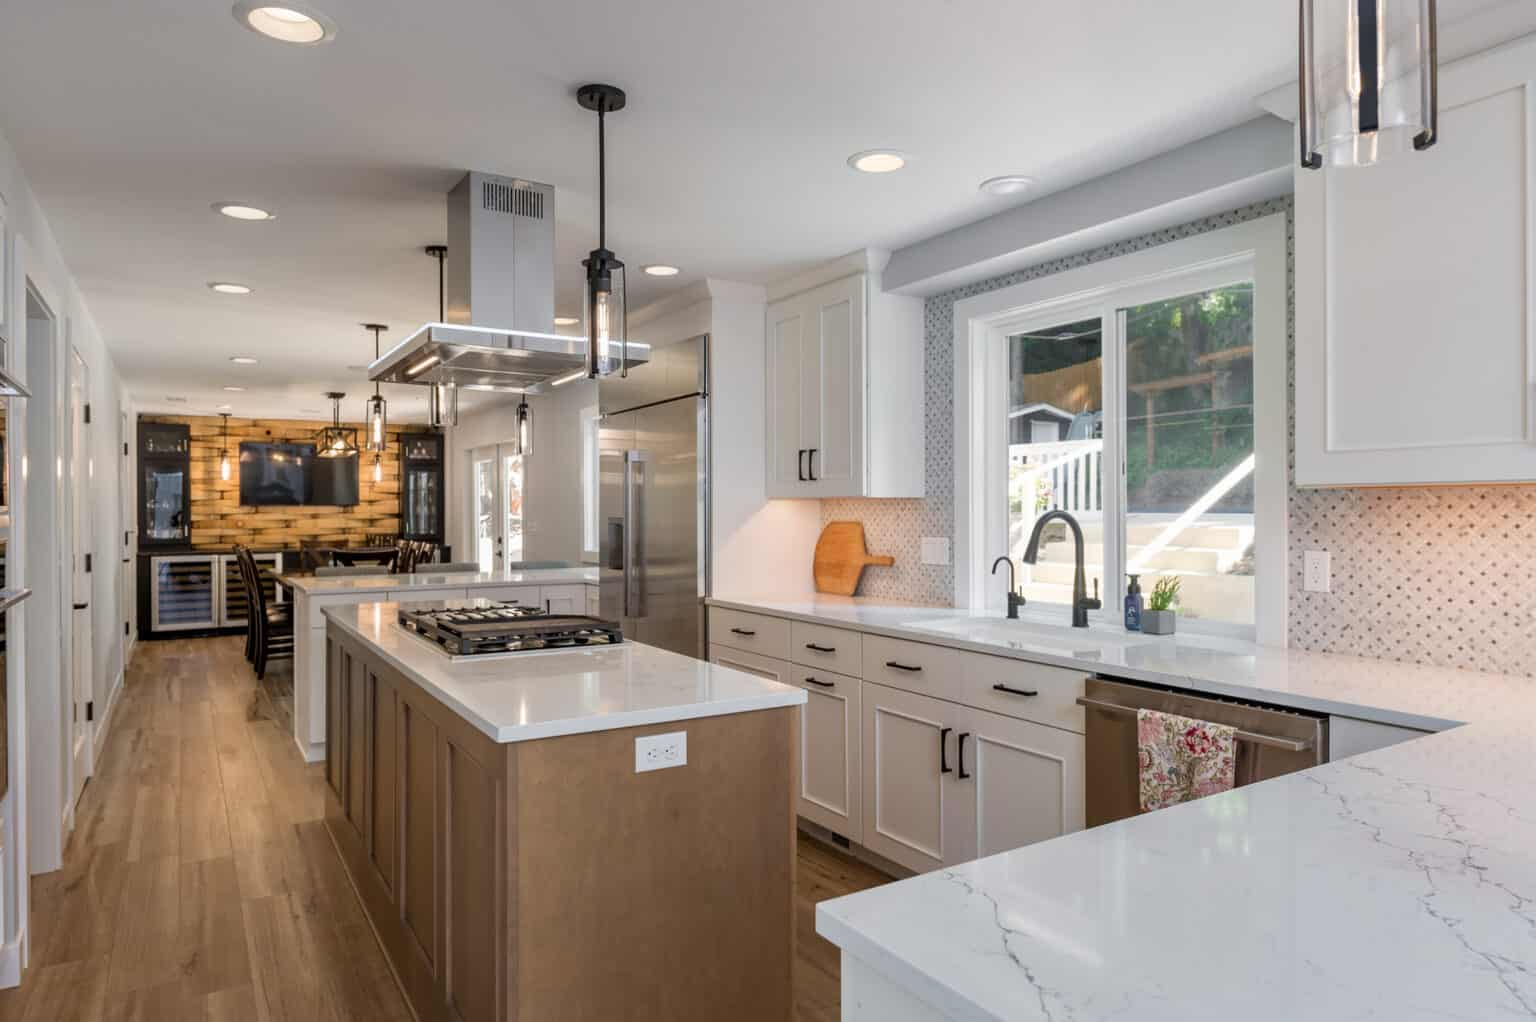 TWO TONED KITCHEN REMODEL 3